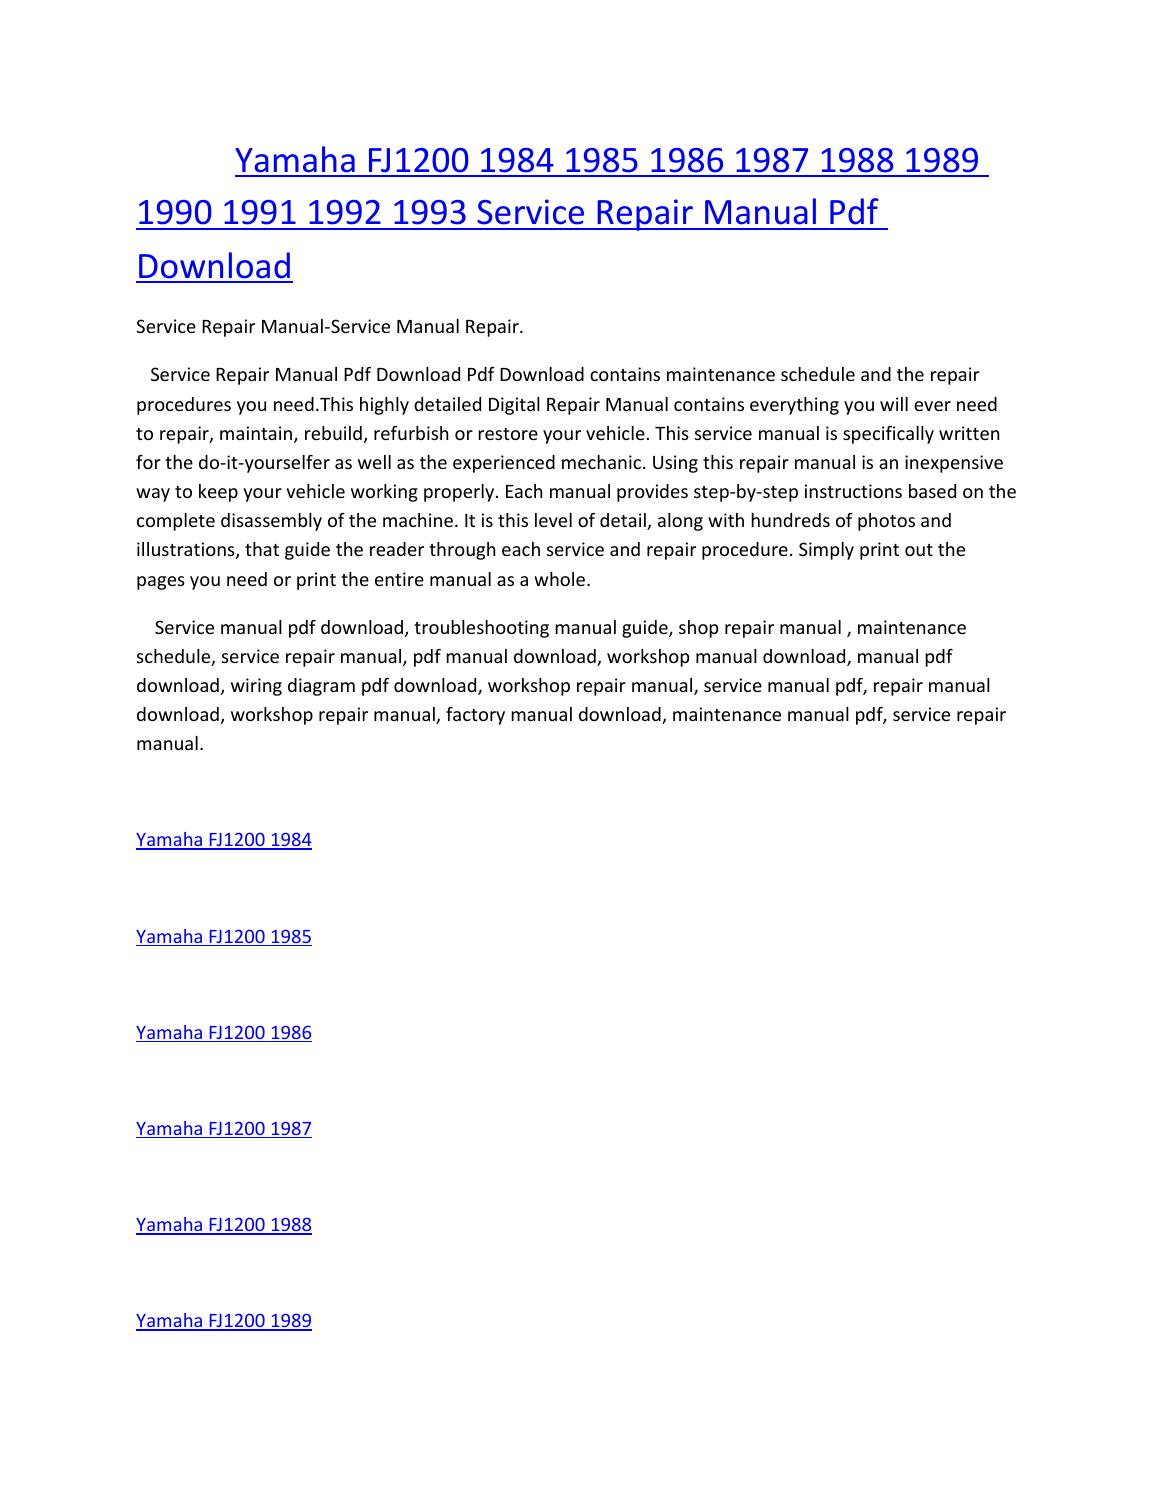 fj1200 wiring diagram 1997 kawasaki bayou 300 yamaha 1984 1985 1986 1987 1988 1989 1990 1991 1992 1993 service manual repair pdf download by amurgului issuu